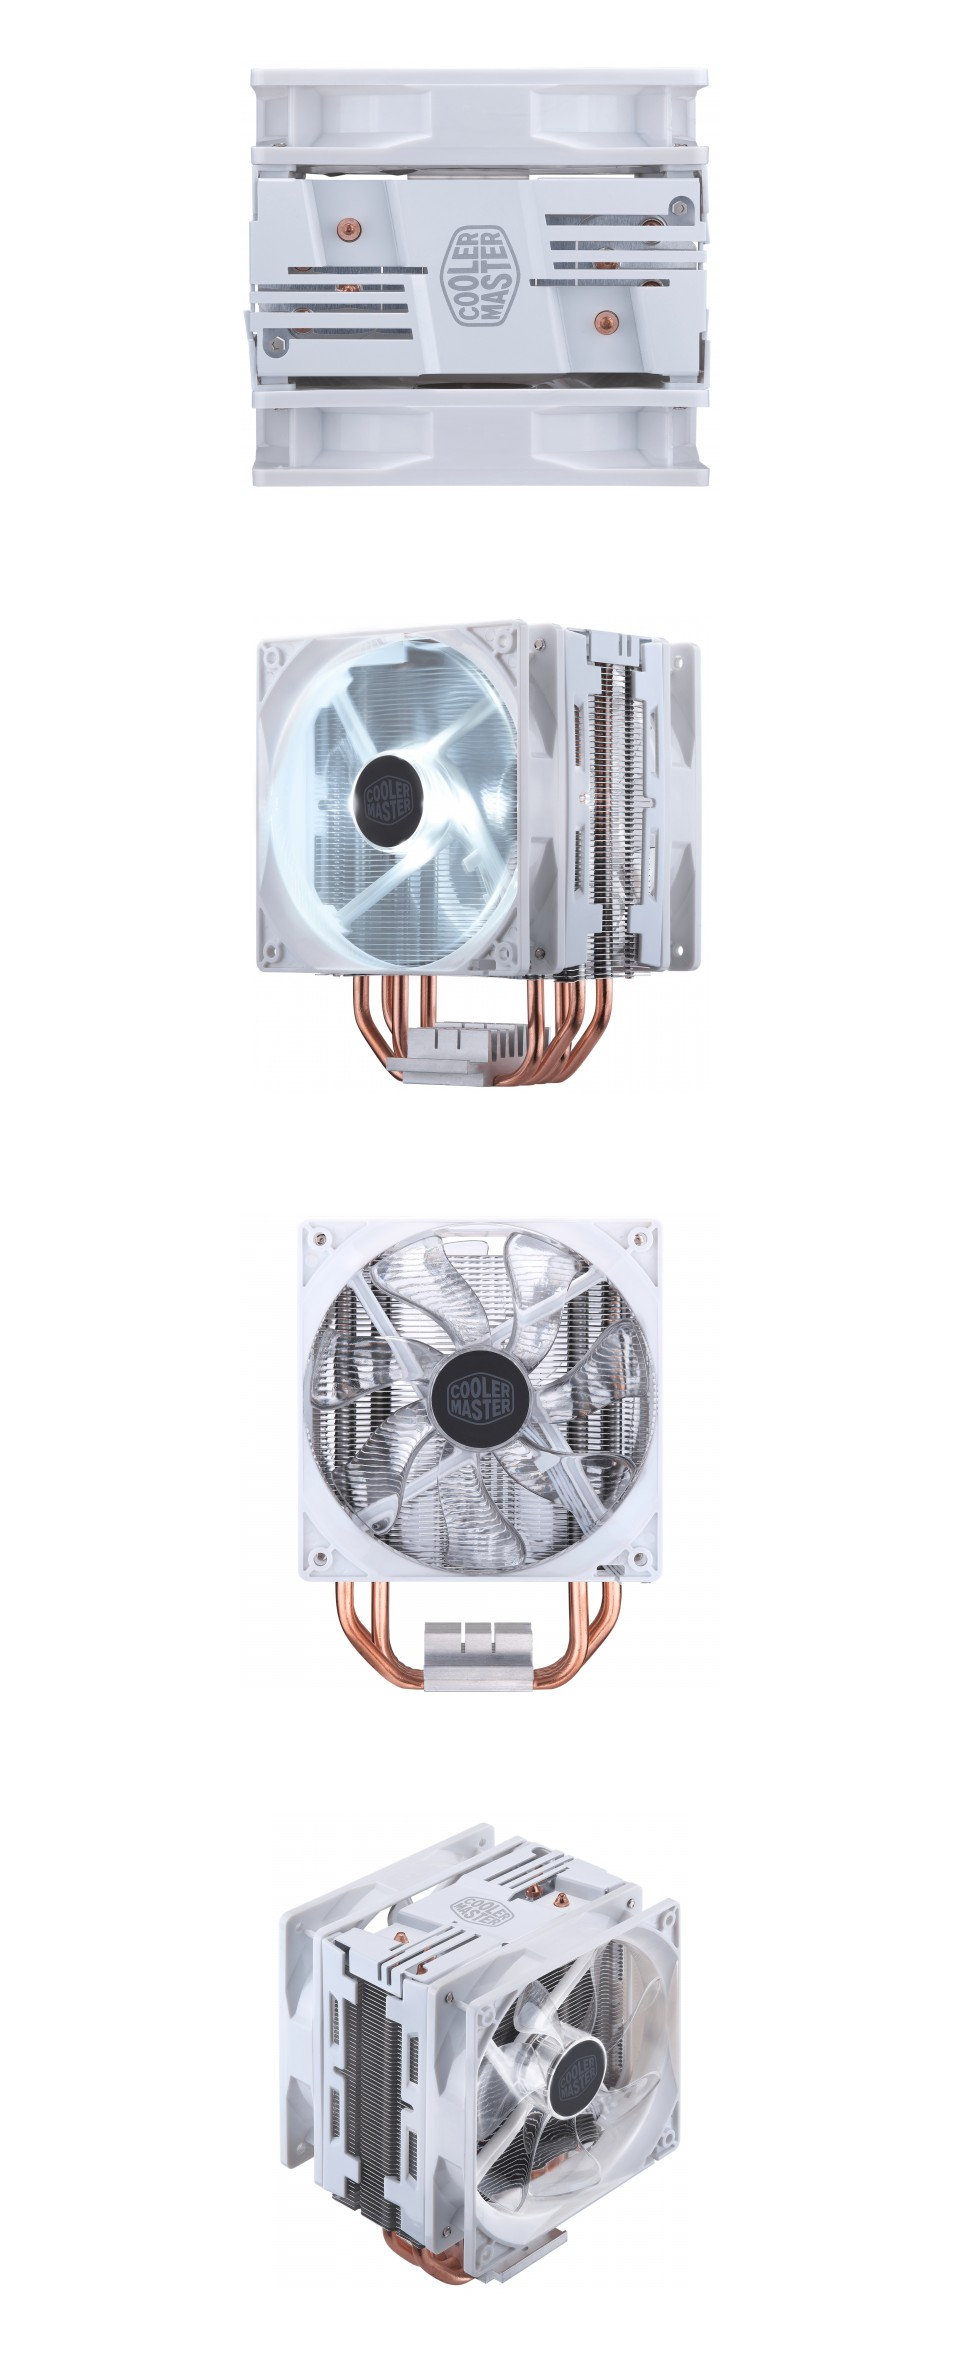 Cooler Master Hyper 212 LED Turbo White Edition CPU Cooler product